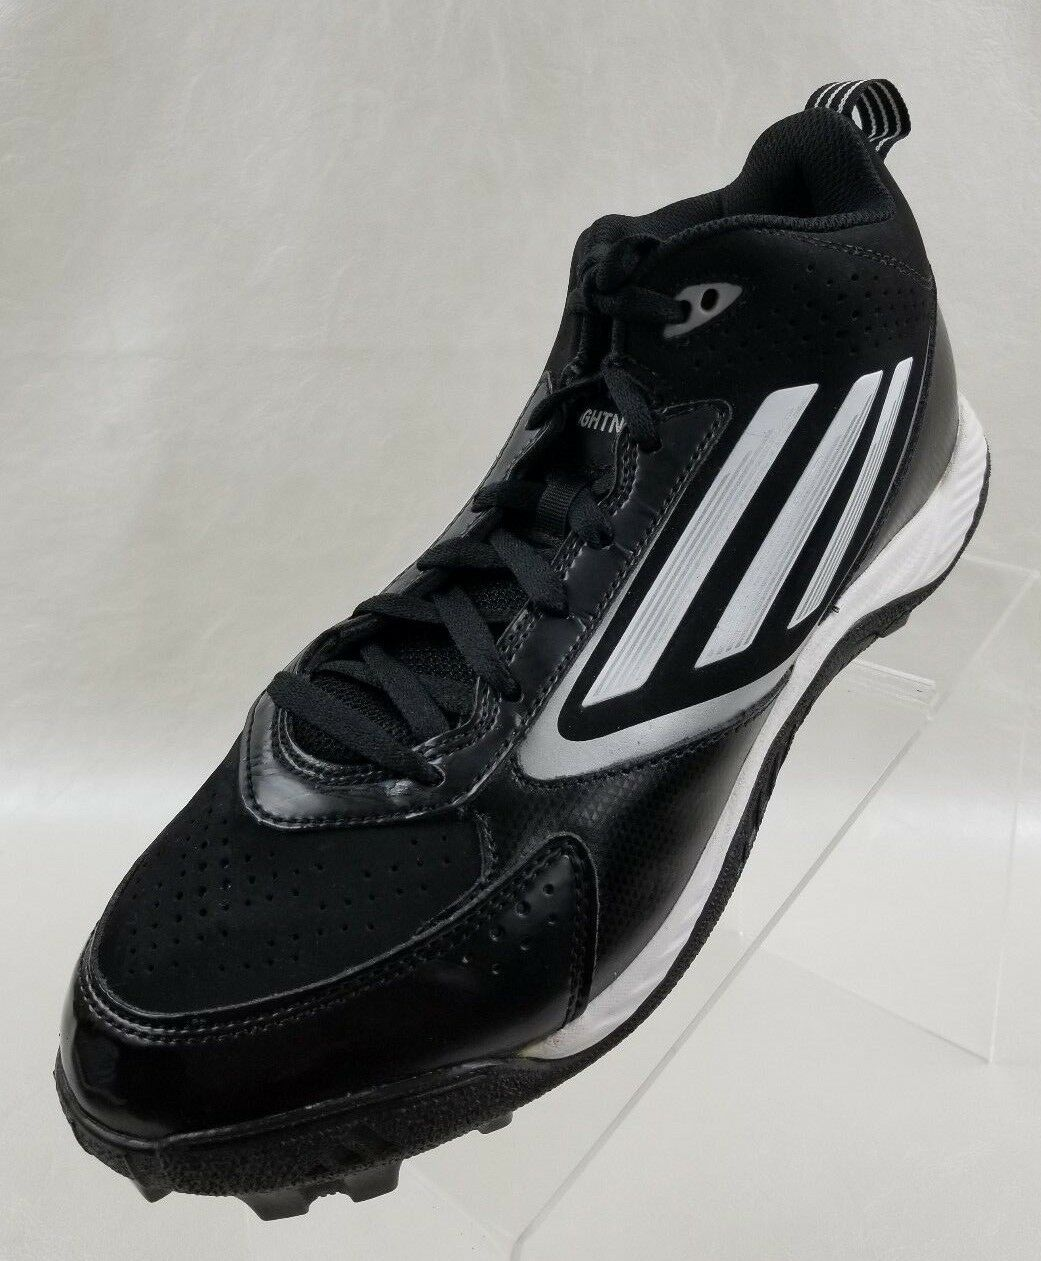 Adidas Football Cleats Lightning Mens Black White Lace Up Shoes Comfortable Brand discount